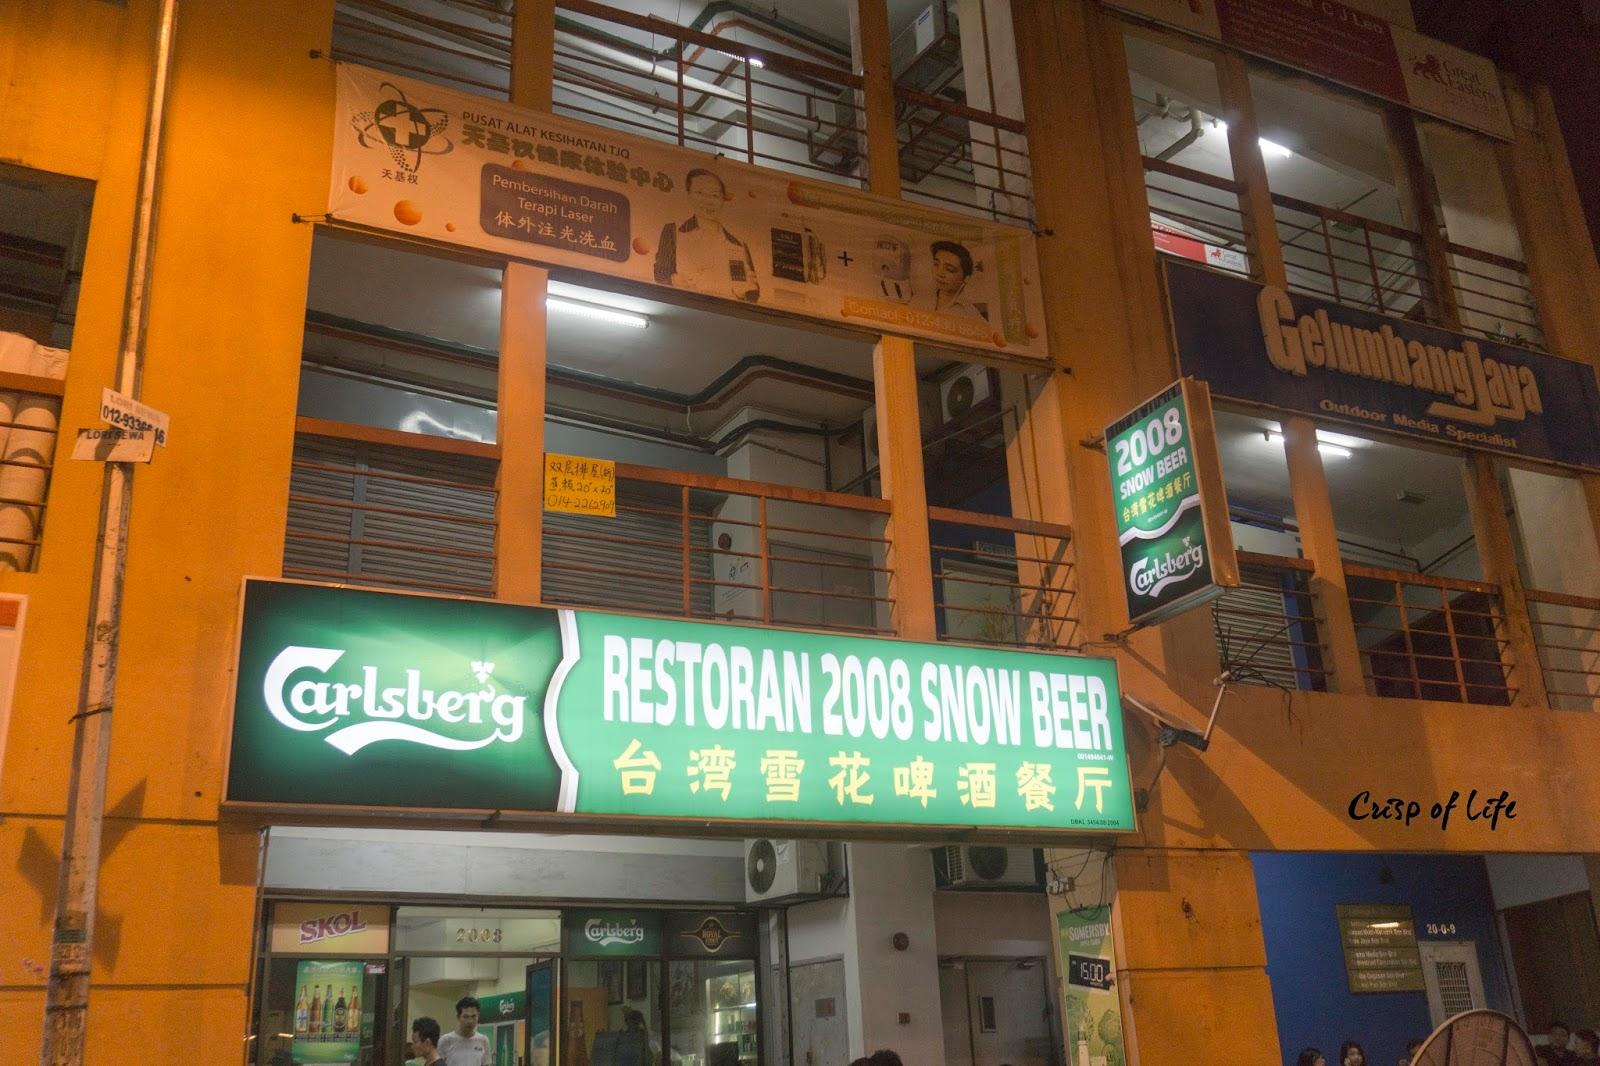 Restaurant 2008 Snow Beer Cheras